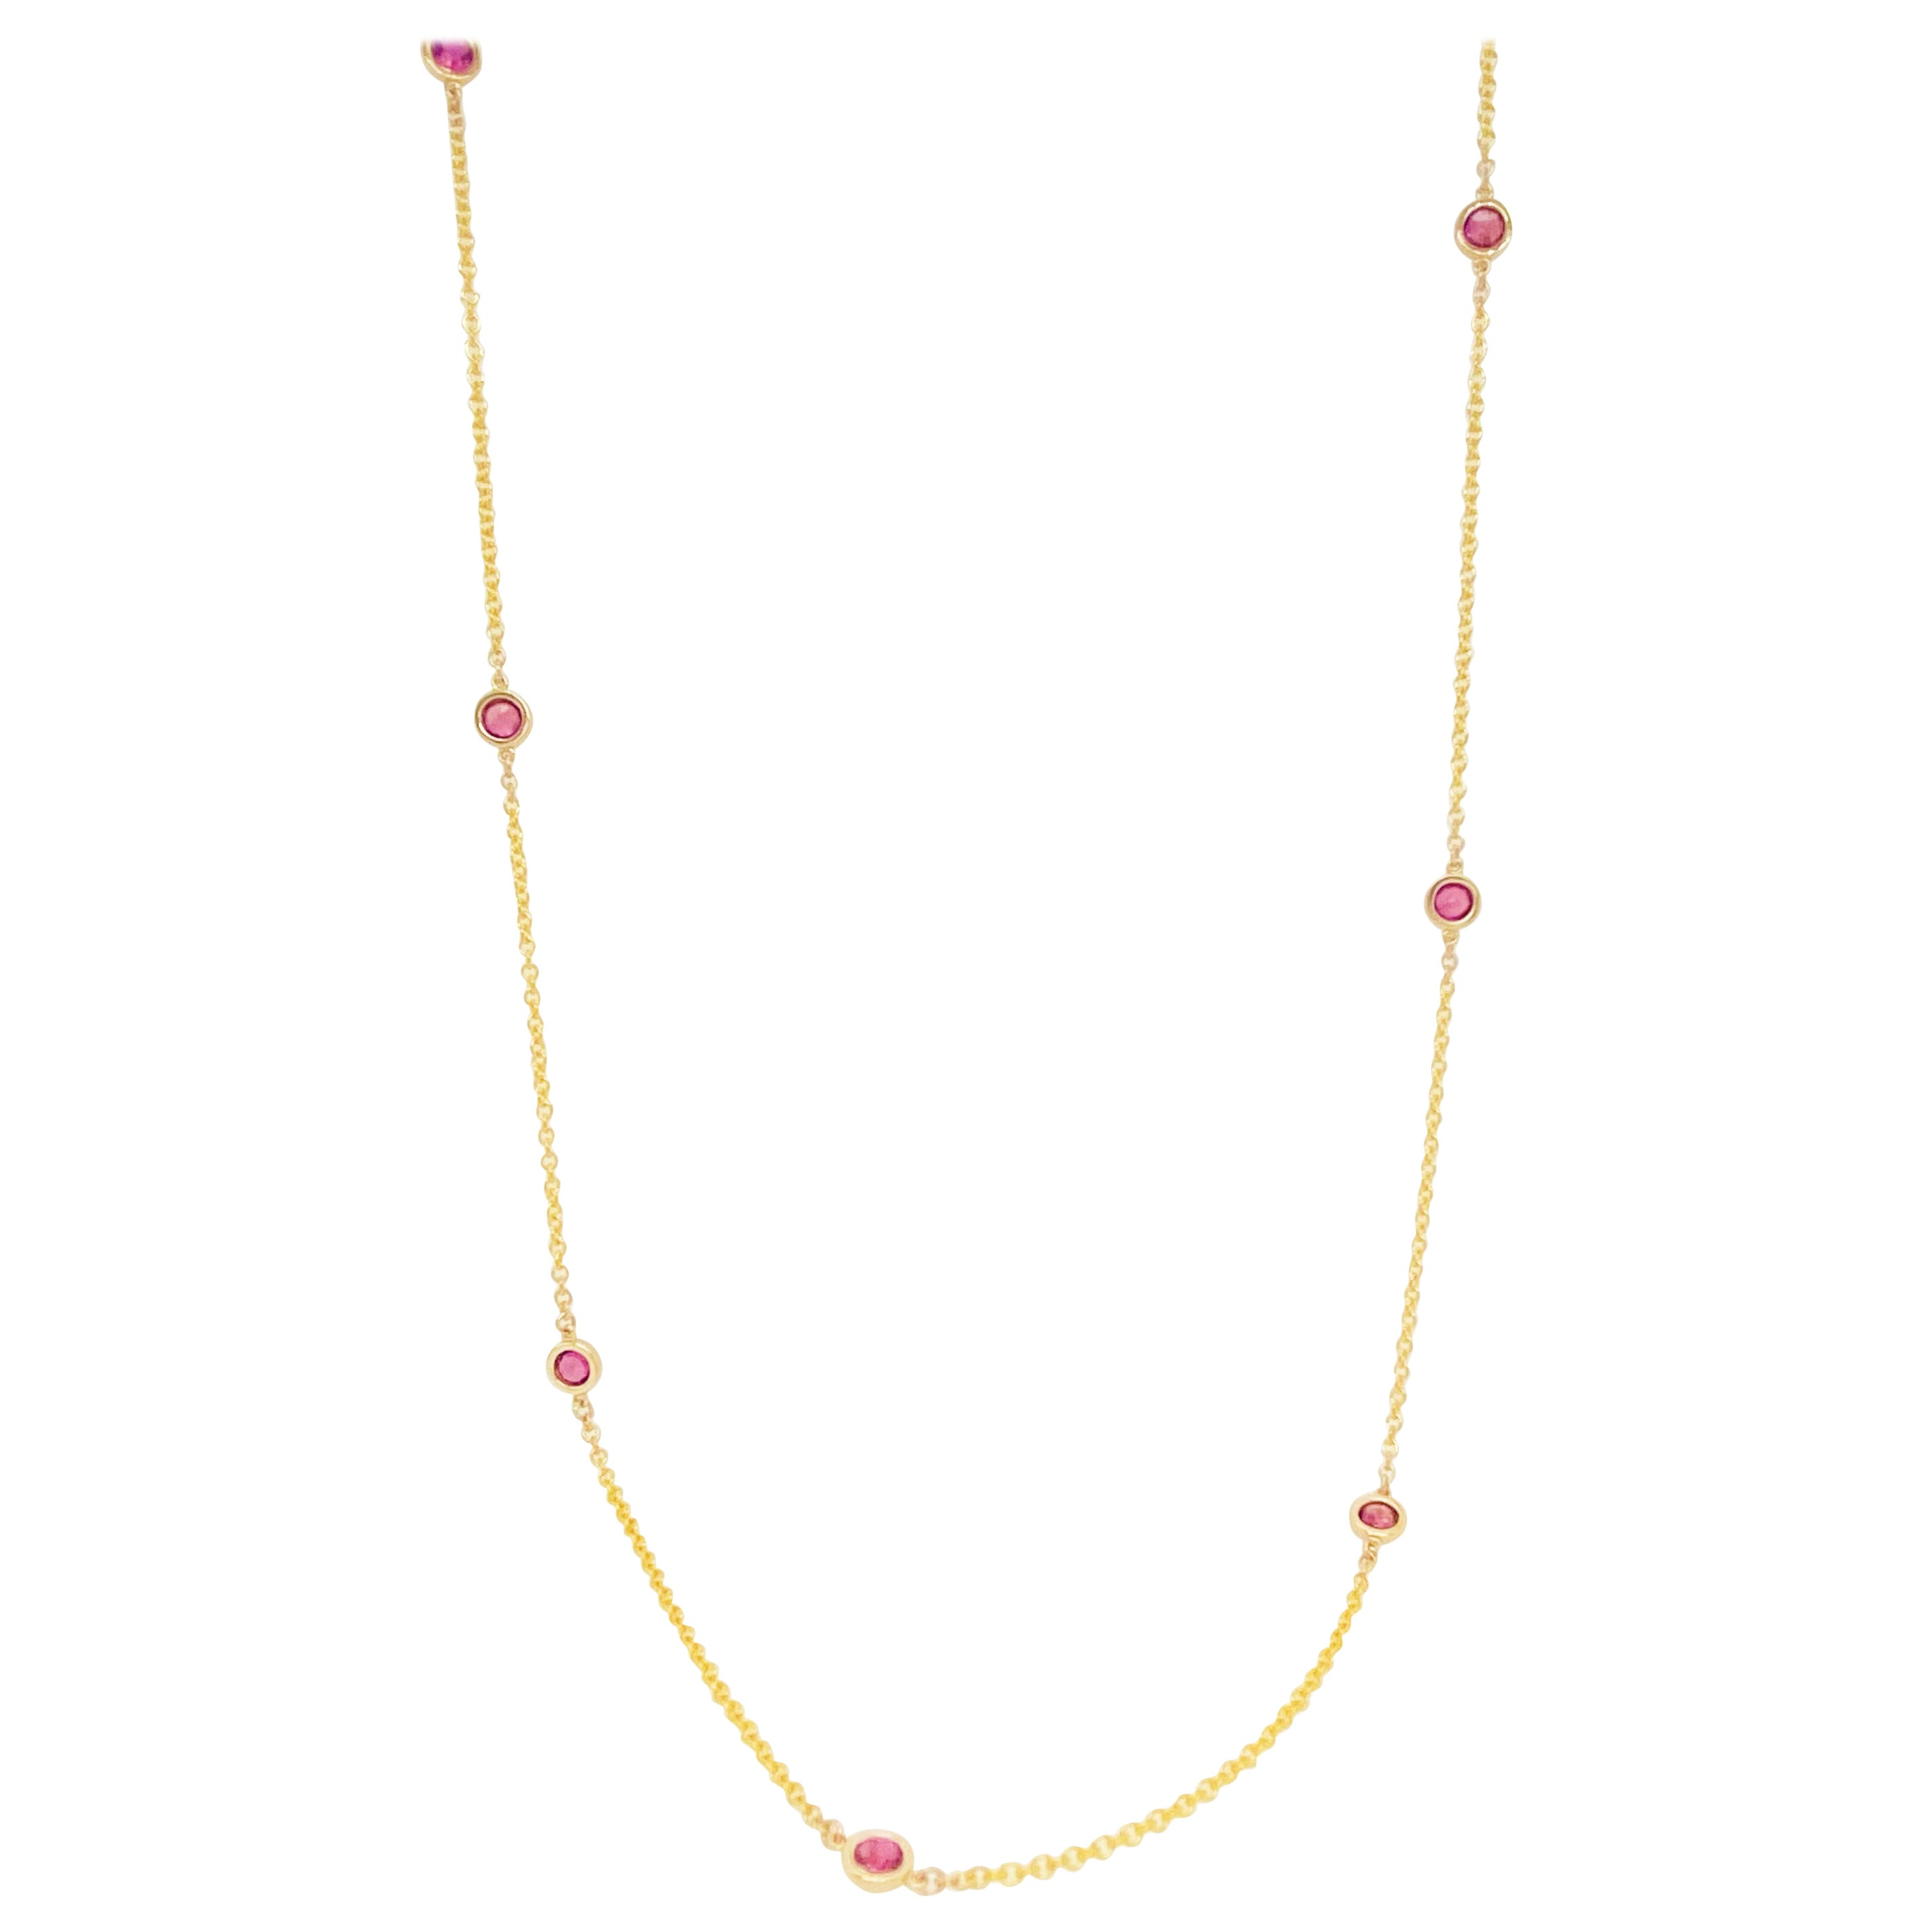 Ruby Bezel Necklace, 14 Karat Gold, Rubies by the Yard Necklace, Ruby Chain